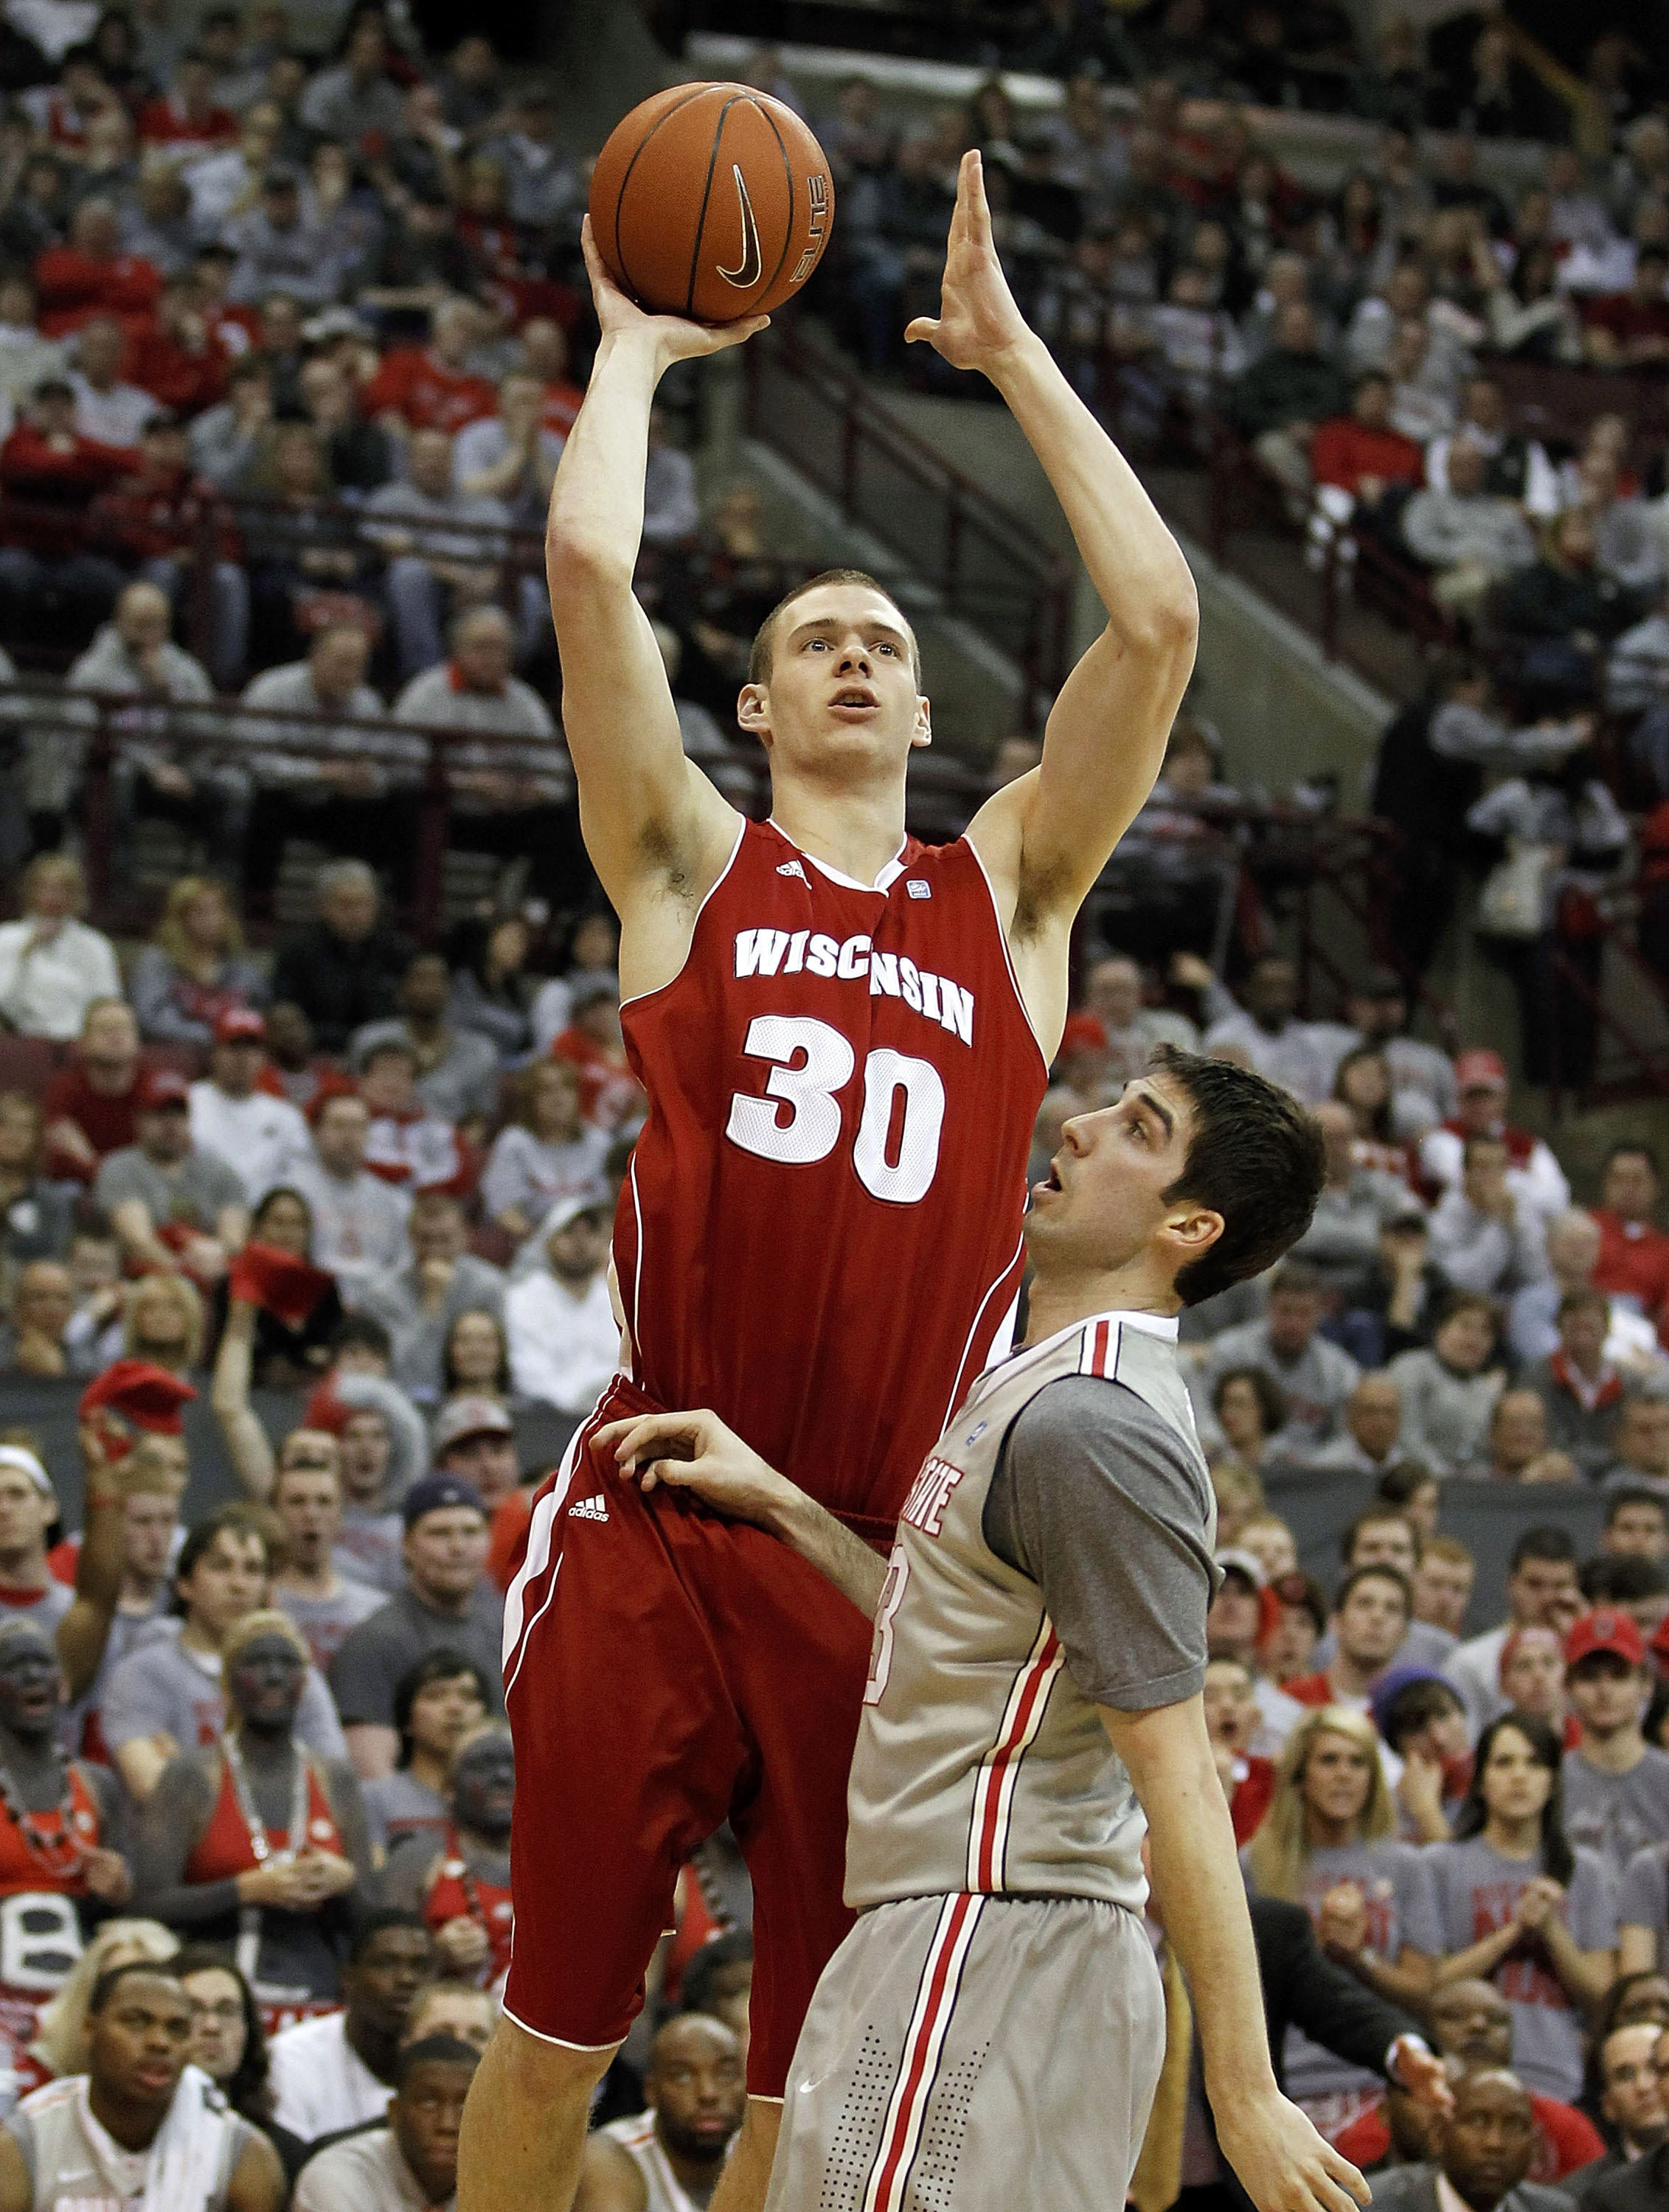 COLUMBUS, OH - MARCH 06:  Jon Leuer #30 of the Wisconsin Badgers shoots over Jon Diebler #33 of the Ohio State Buckeyeson March 6, 2011 at the Value City Arena in Columbus, Ohio.  (Photo by Gregory Shamus/Getty Images)